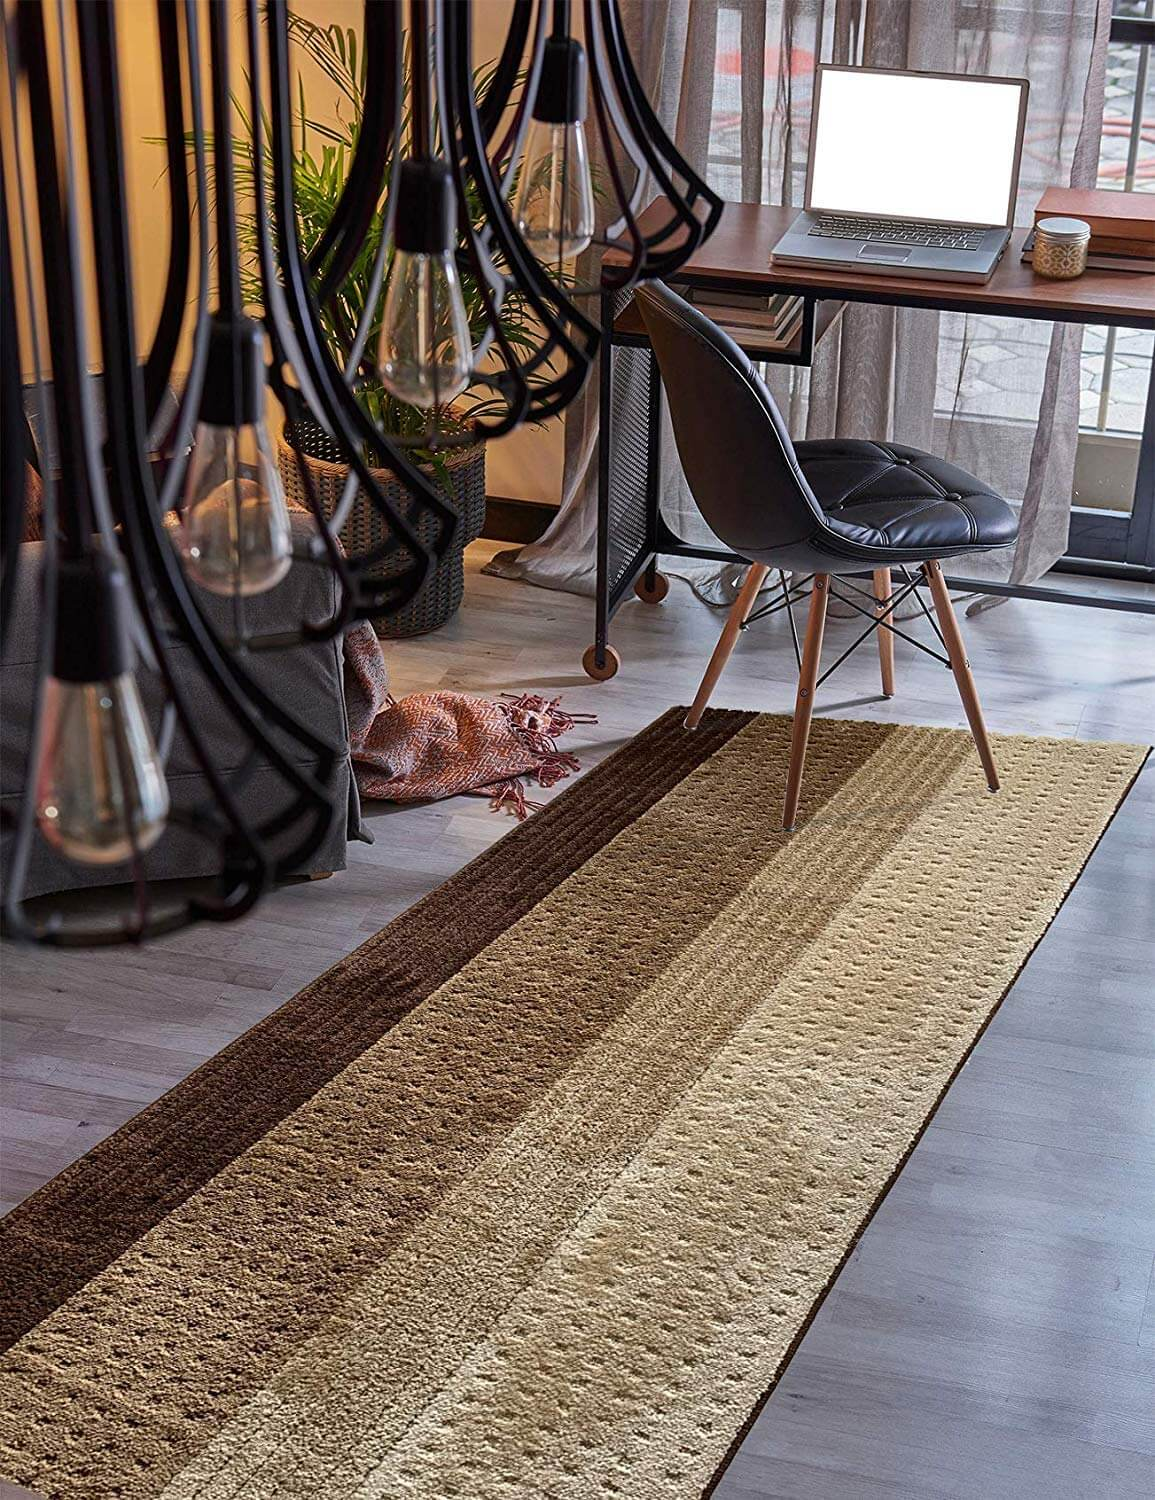 Natural Tones in Stripes for Modern Rug Addition